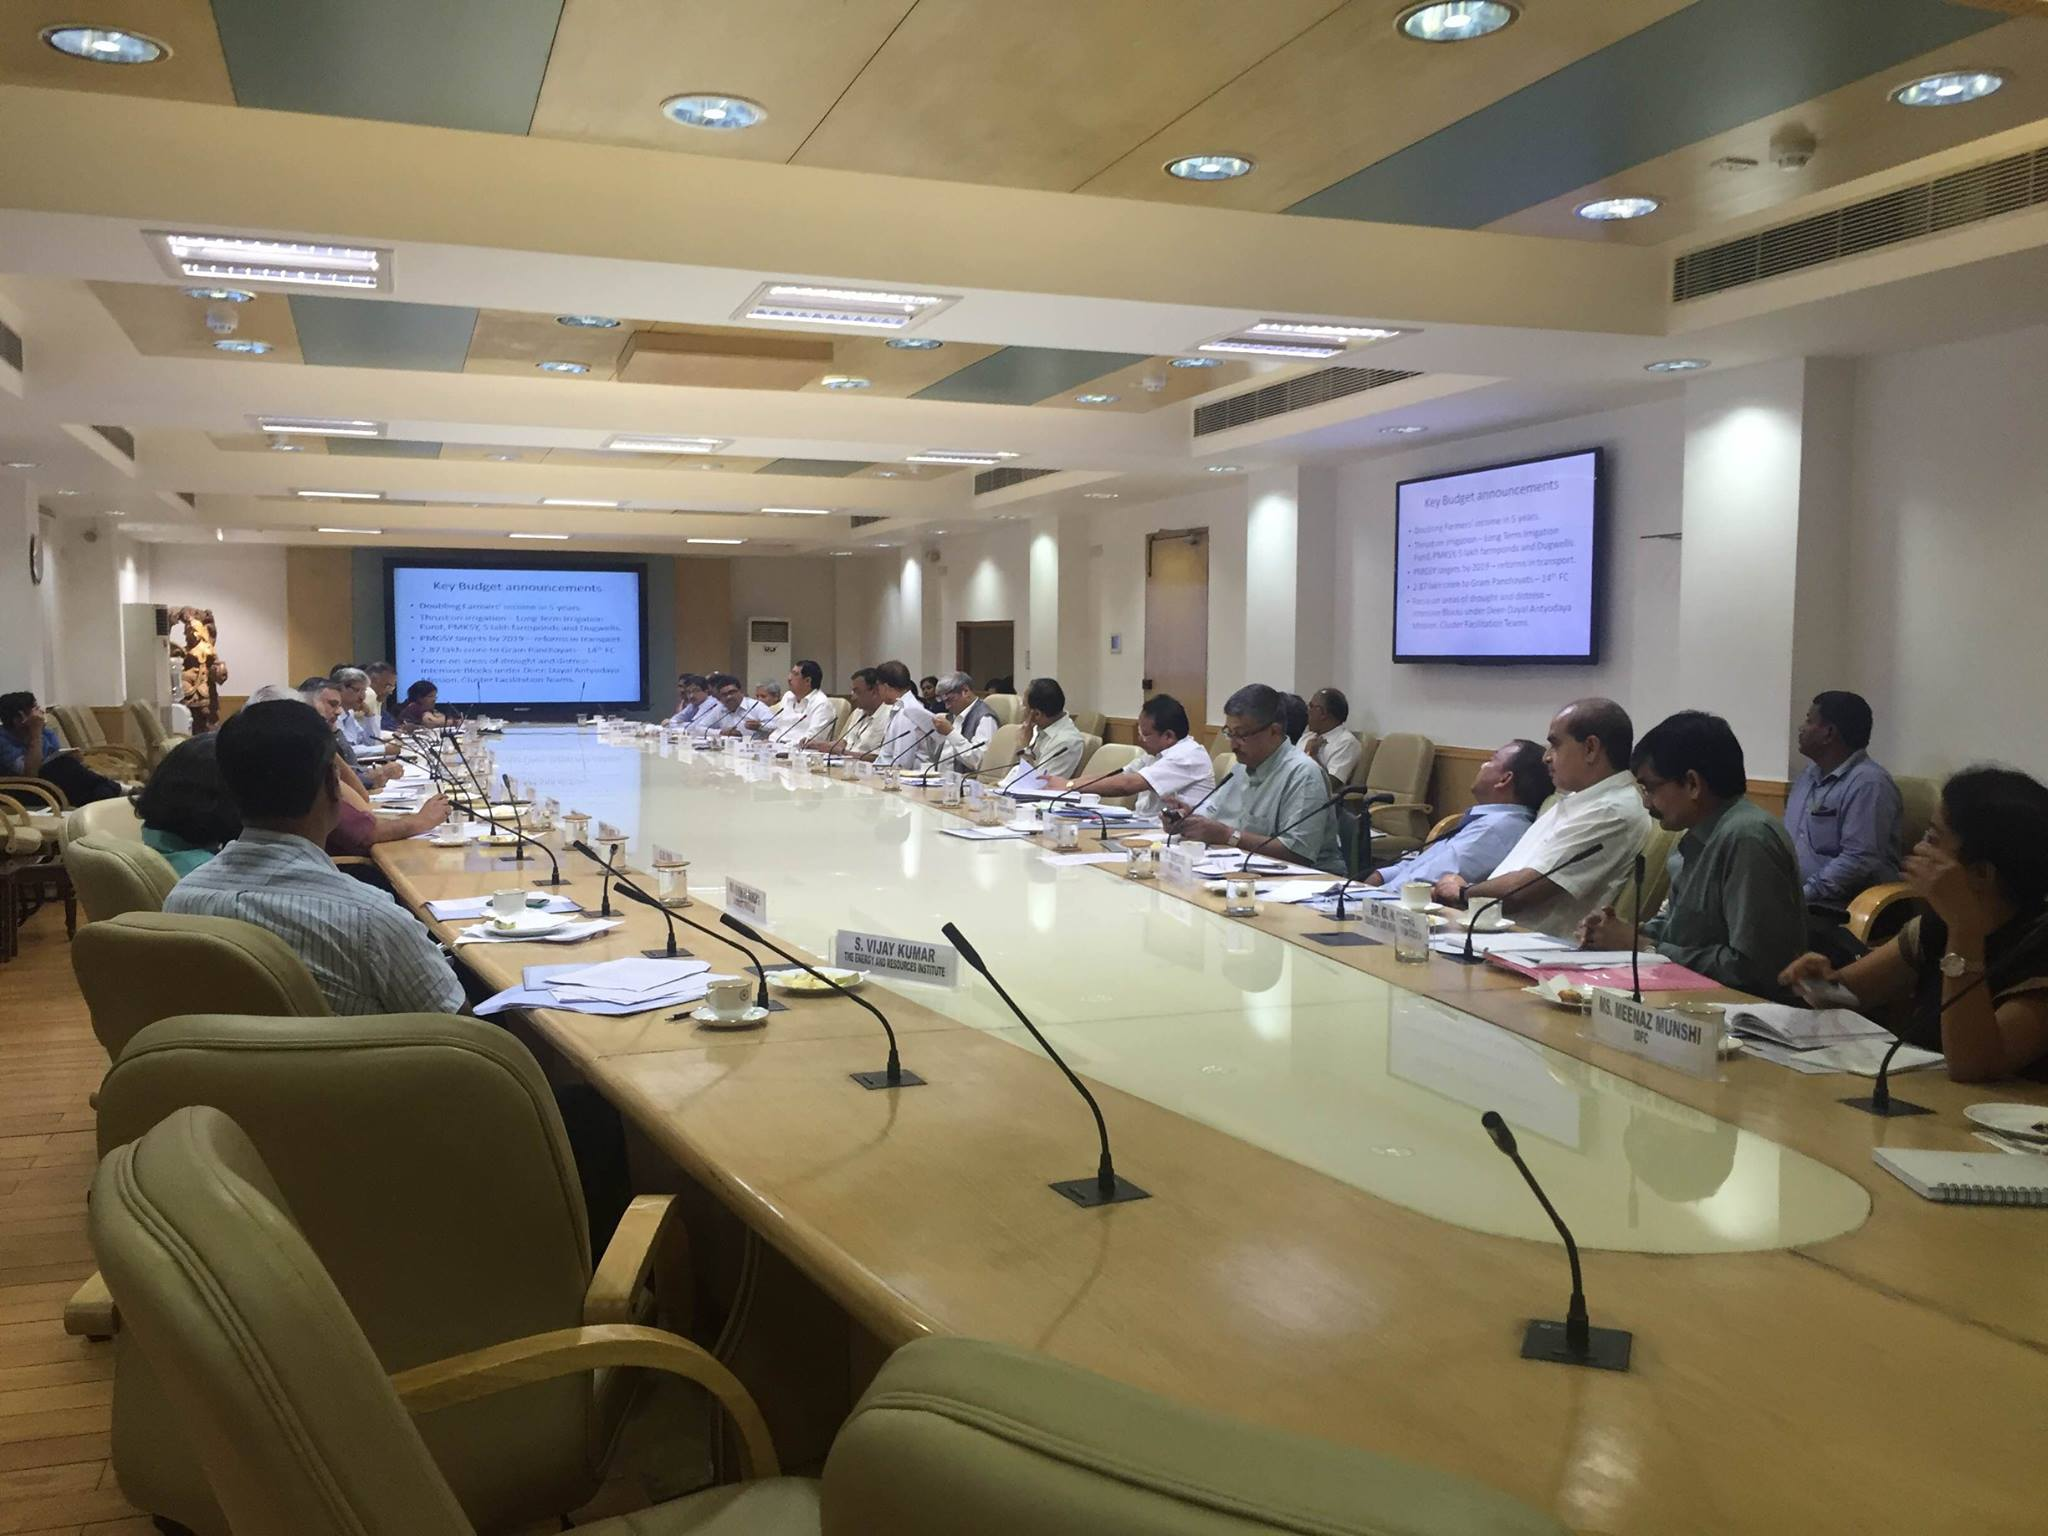 Meeting on 'Vision, Strategy and Action Plan on Rural Economy, Safety Nets and Social Inclusion' organised by NITI Aayog in preparation of the Vision 2030 document on 11th August, 2016